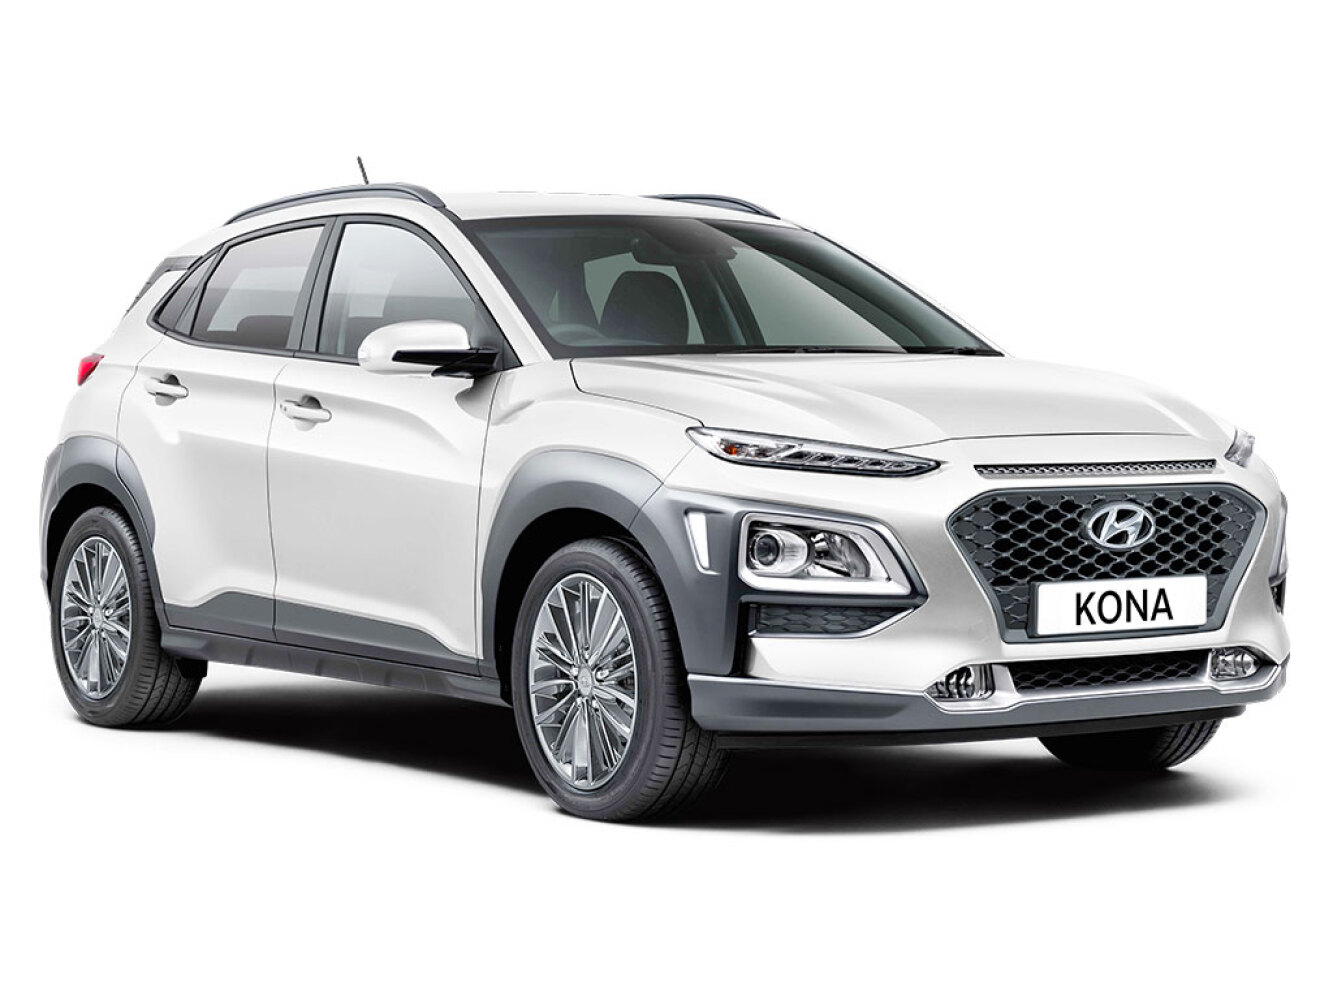 new hyundai kona 1 6 crdi premium se 5dr diesel hatchback. Black Bedroom Furniture Sets. Home Design Ideas